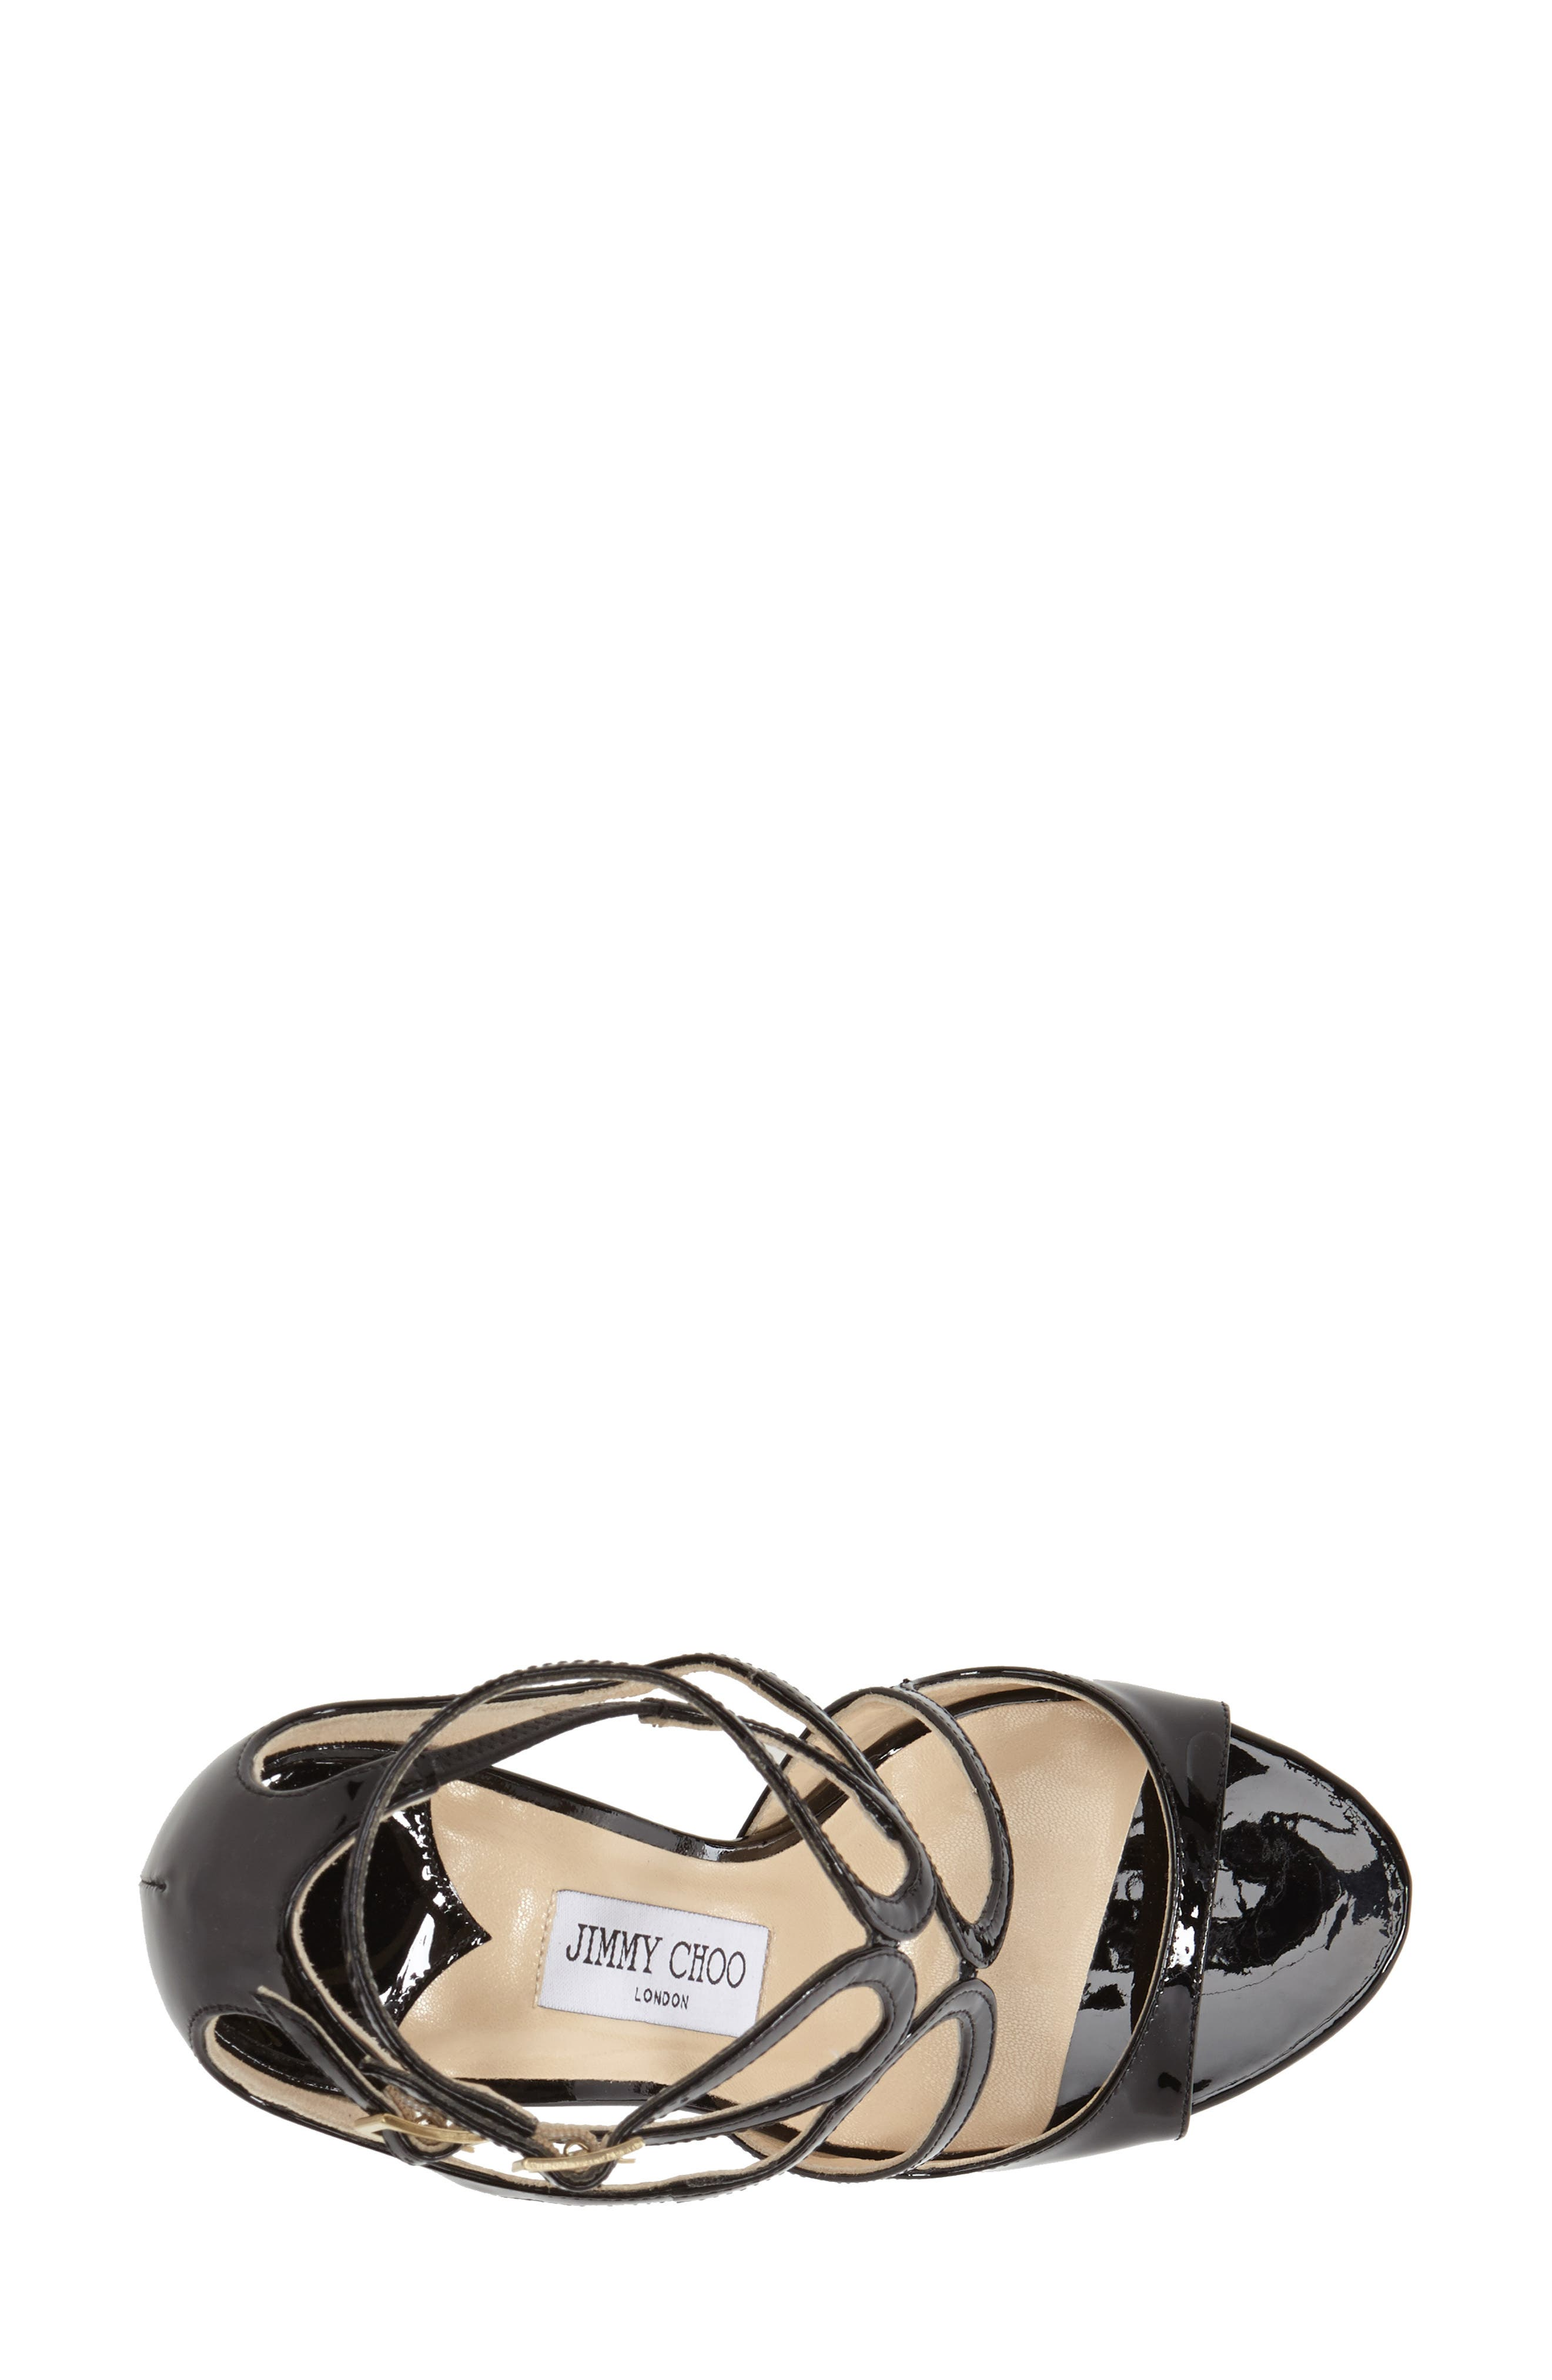 JIMMY CHOO, 'Lang' Sandal, Alternate thumbnail 2, color, BLACK PATENT